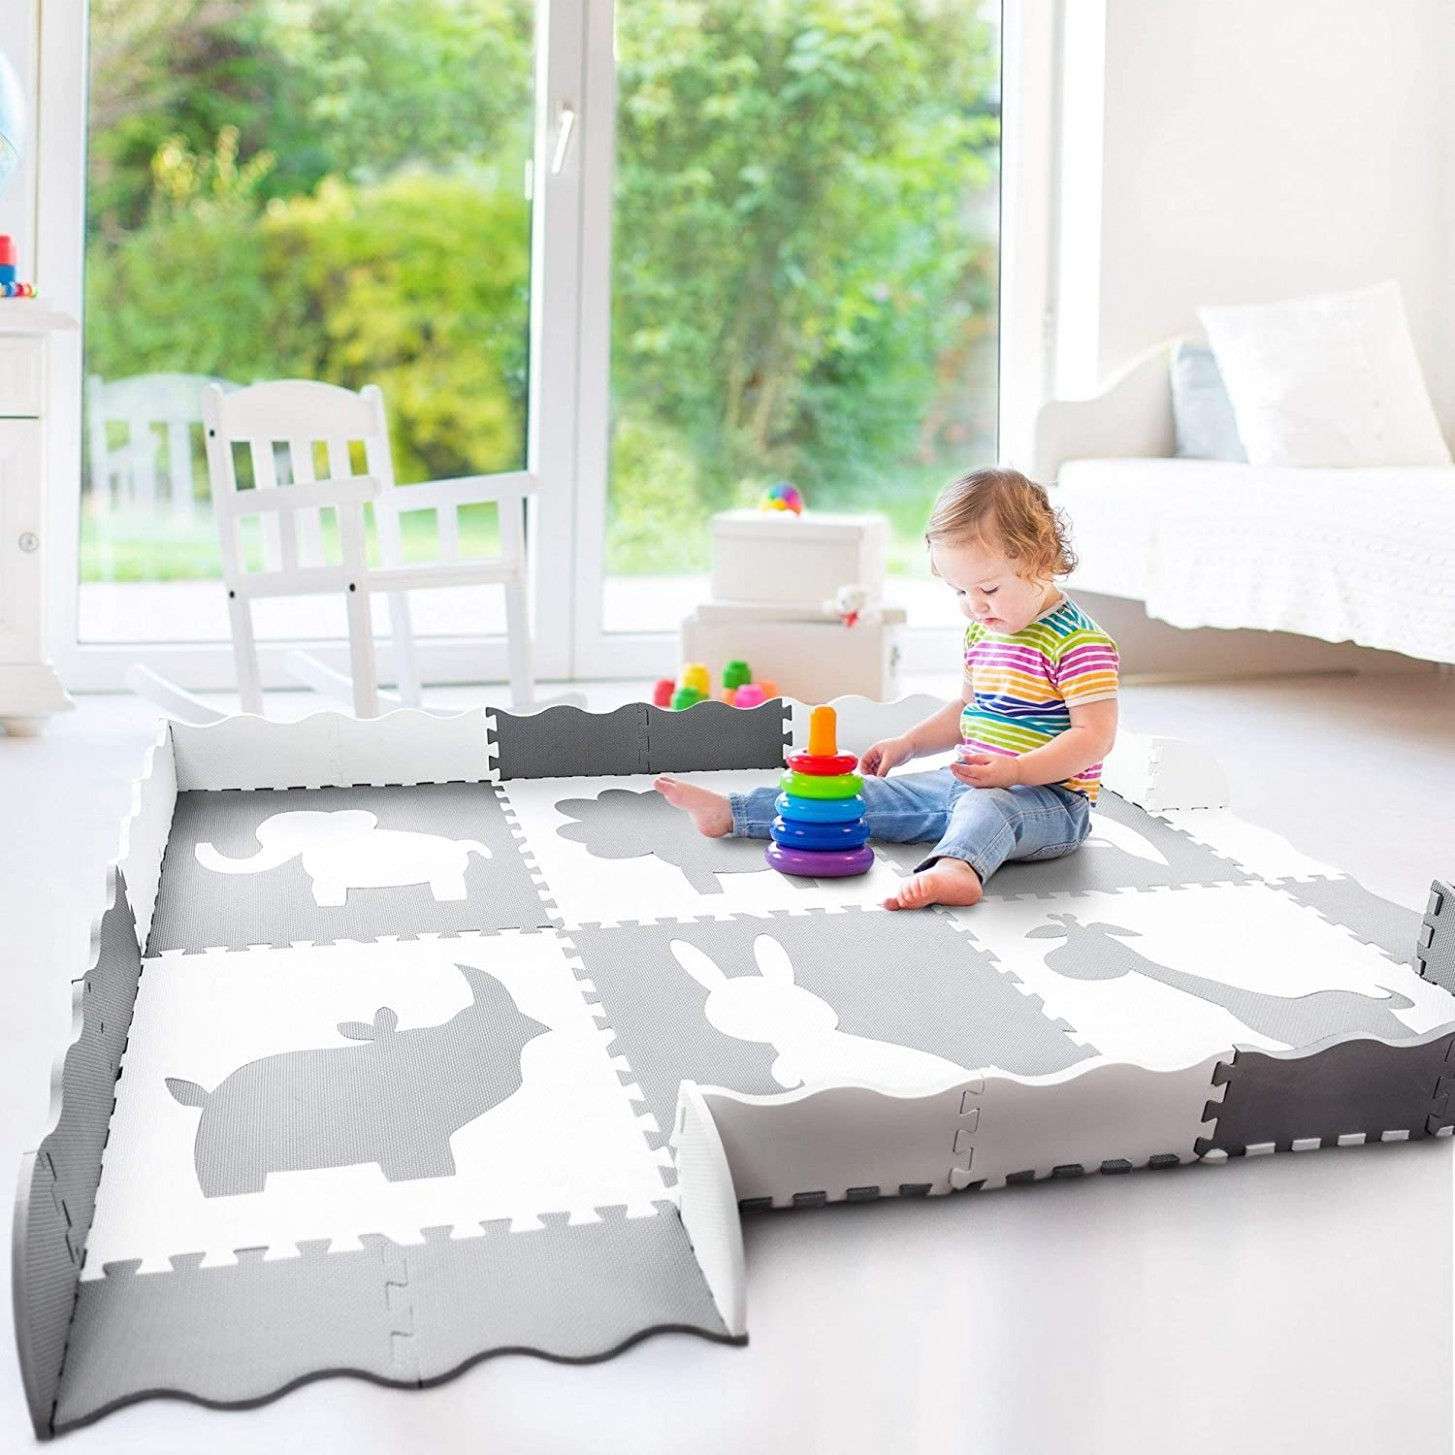 Baby Play Mat with Large Interlocking Foam Floor Tiles. Grey and White Non  Toxic Playmat for Baby, Toddler or Kids